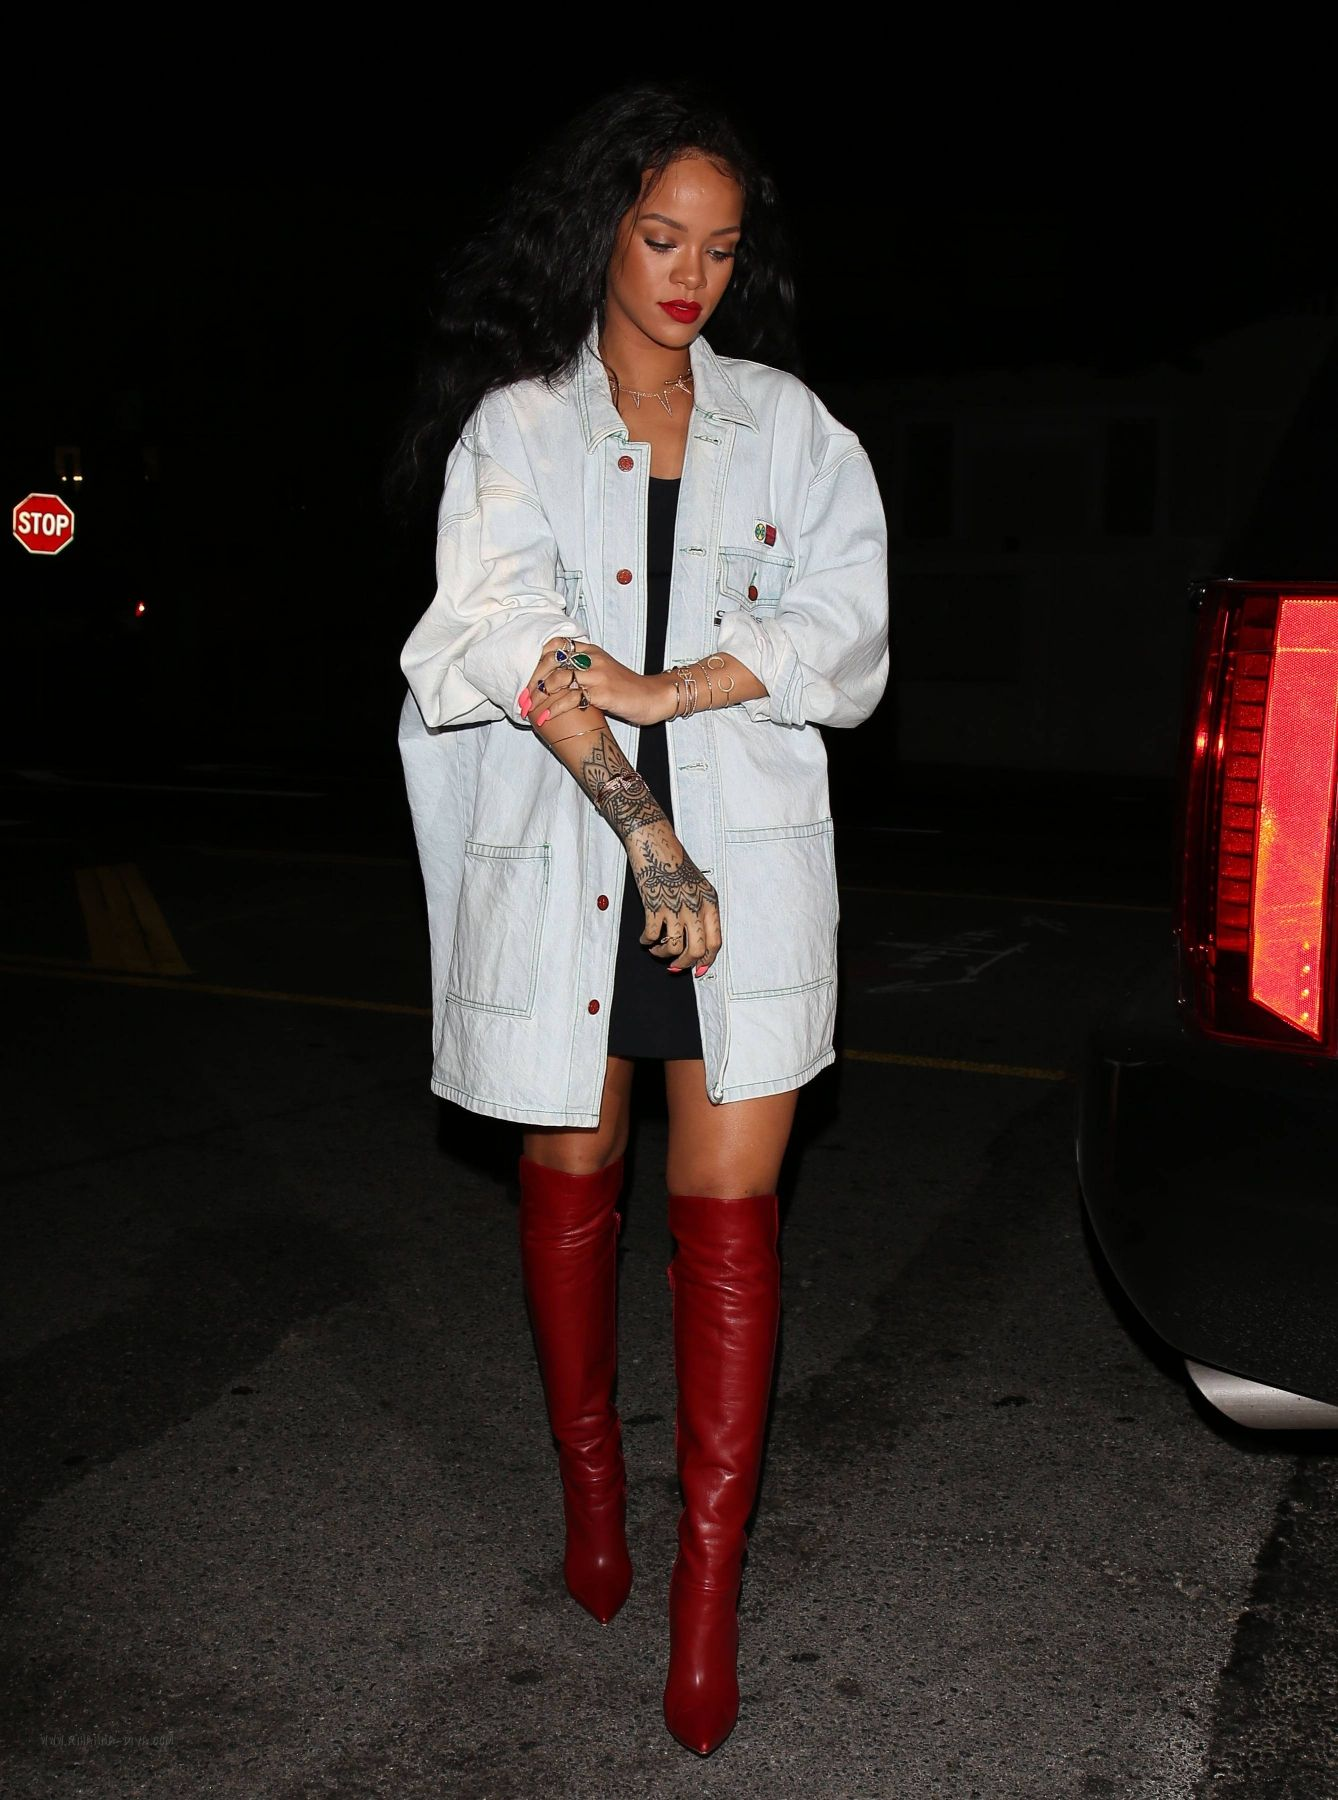 What s hotter than an oversized button down   red knee high boots!  x Riri  wearing it DUH!!! x love 1cb9df24d